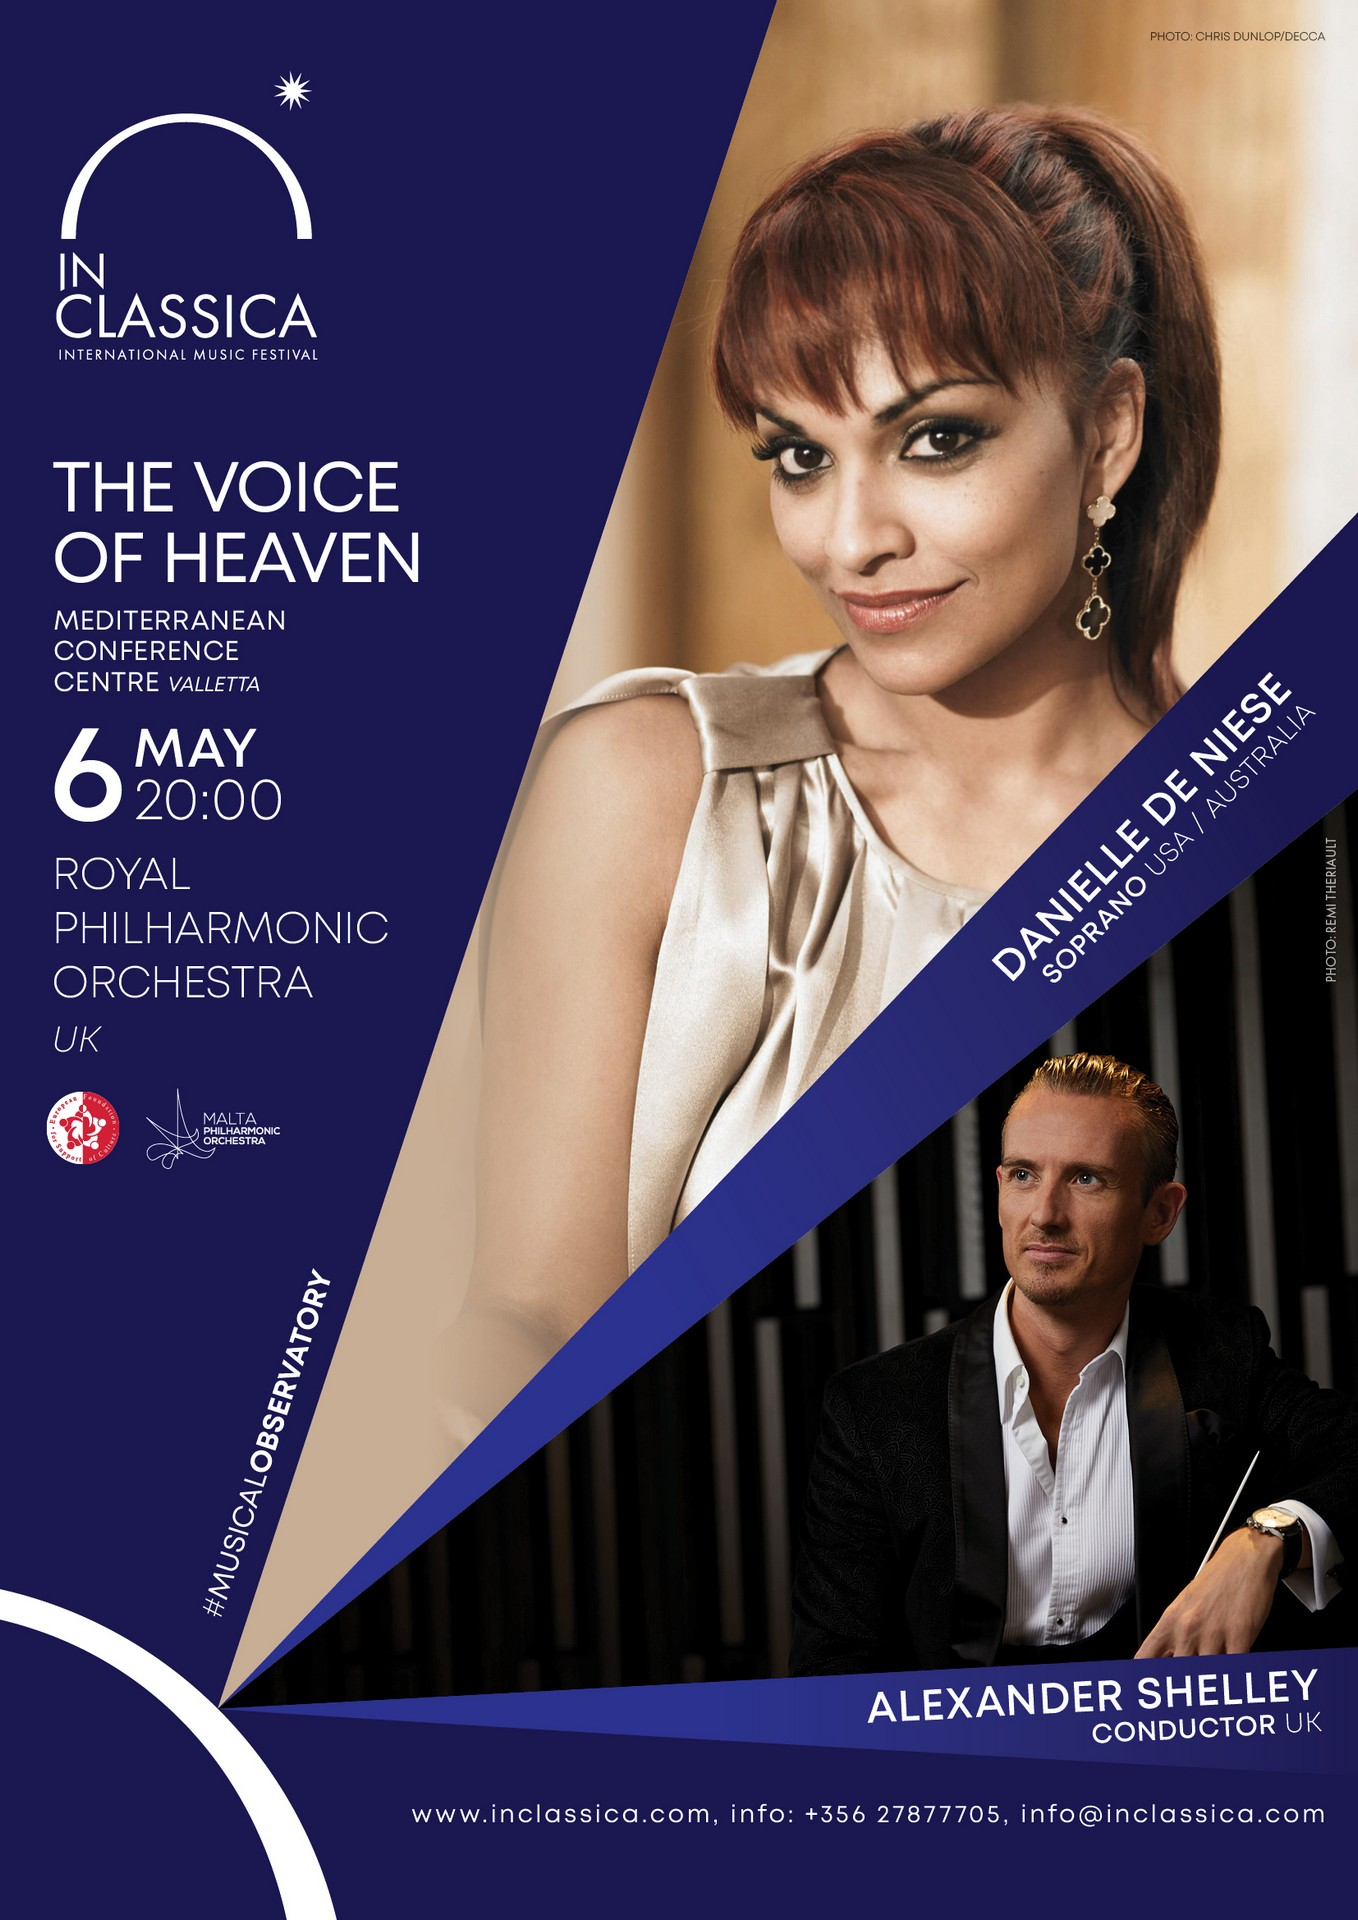 THE VOICE OF HEAVEN flyer